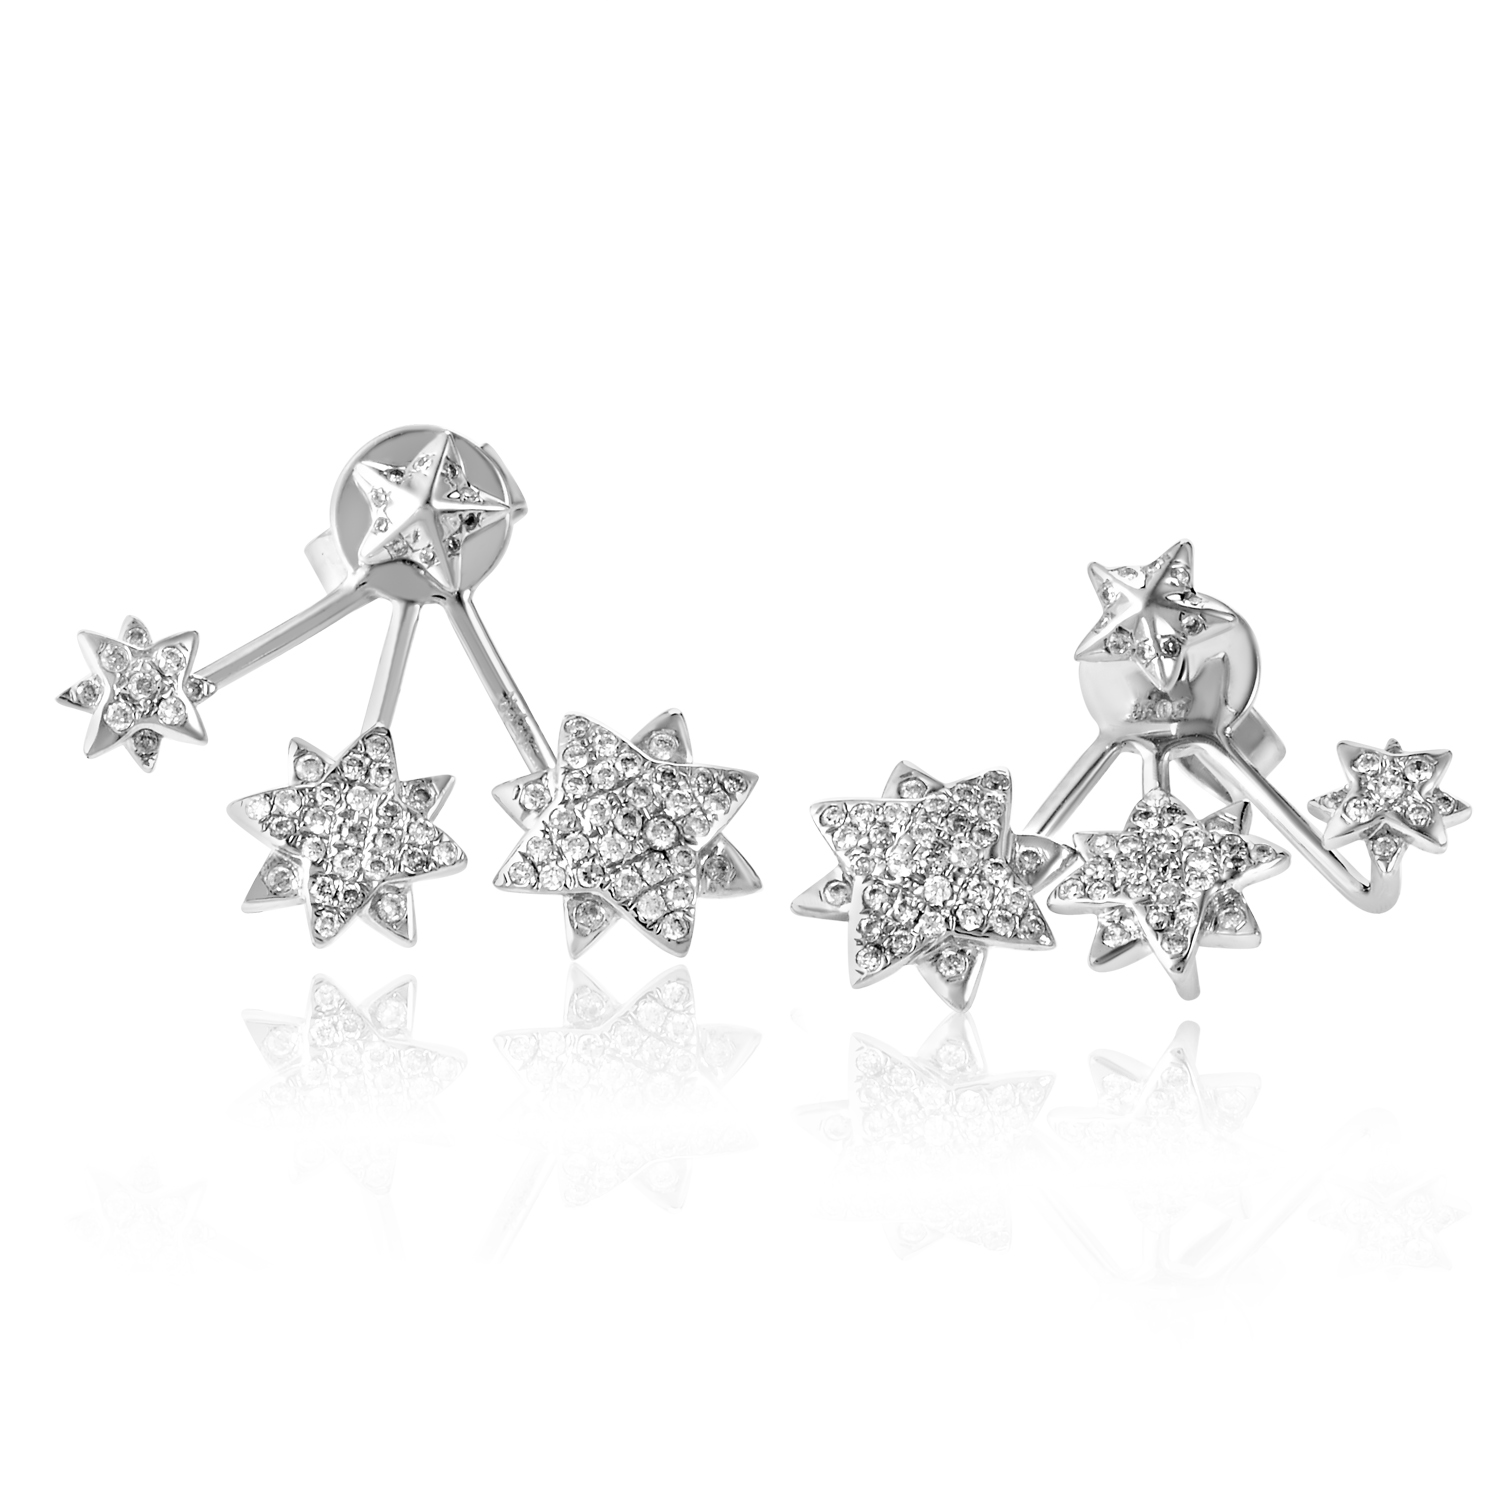 18K White Gold Triple Star Diamond Earrings SE25881EFBZ